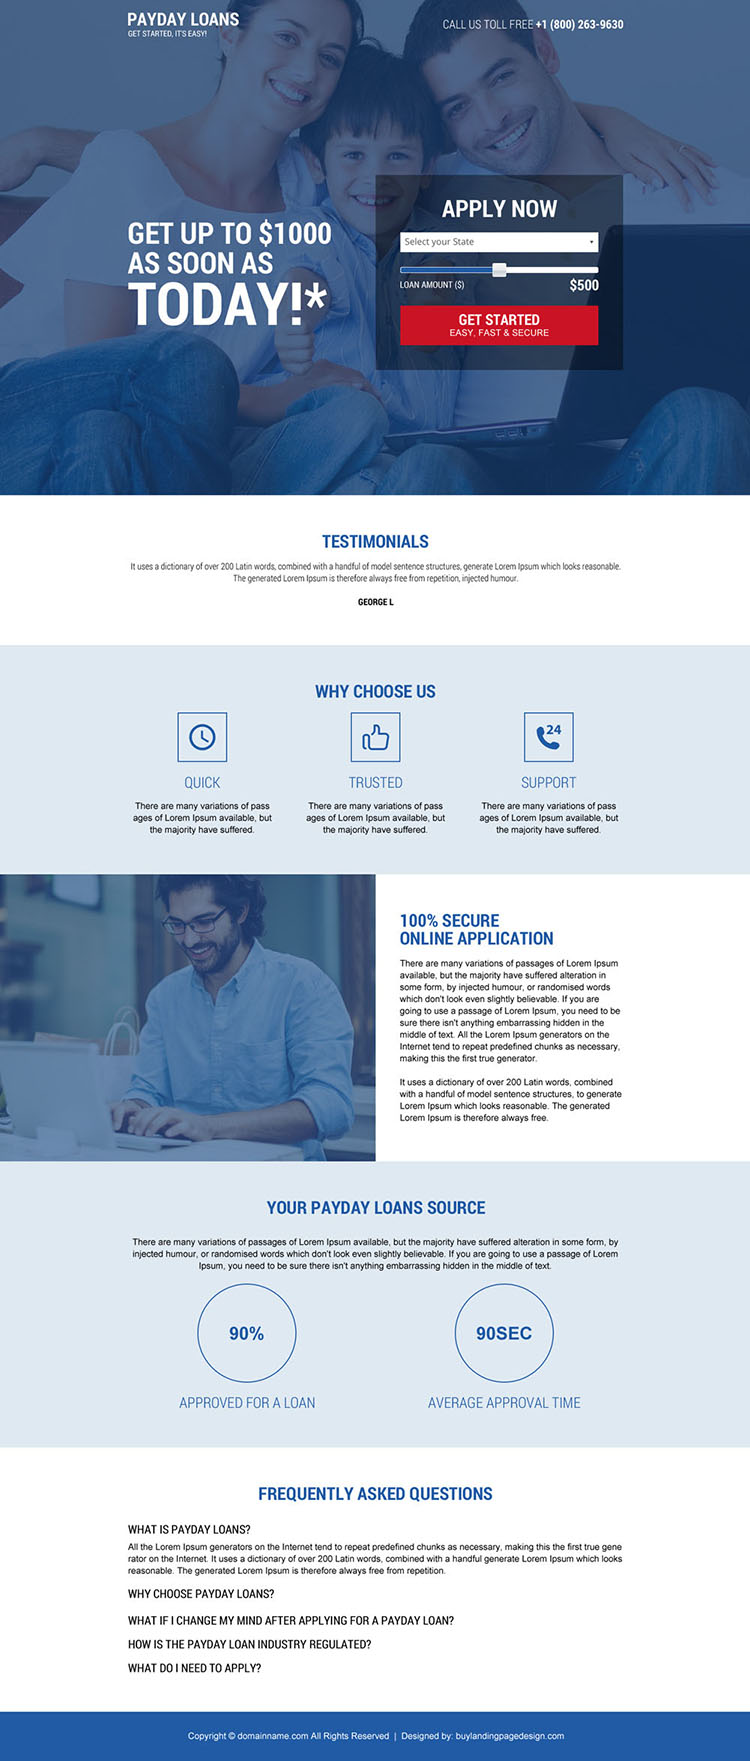 payday loan secure online application responsive landing page